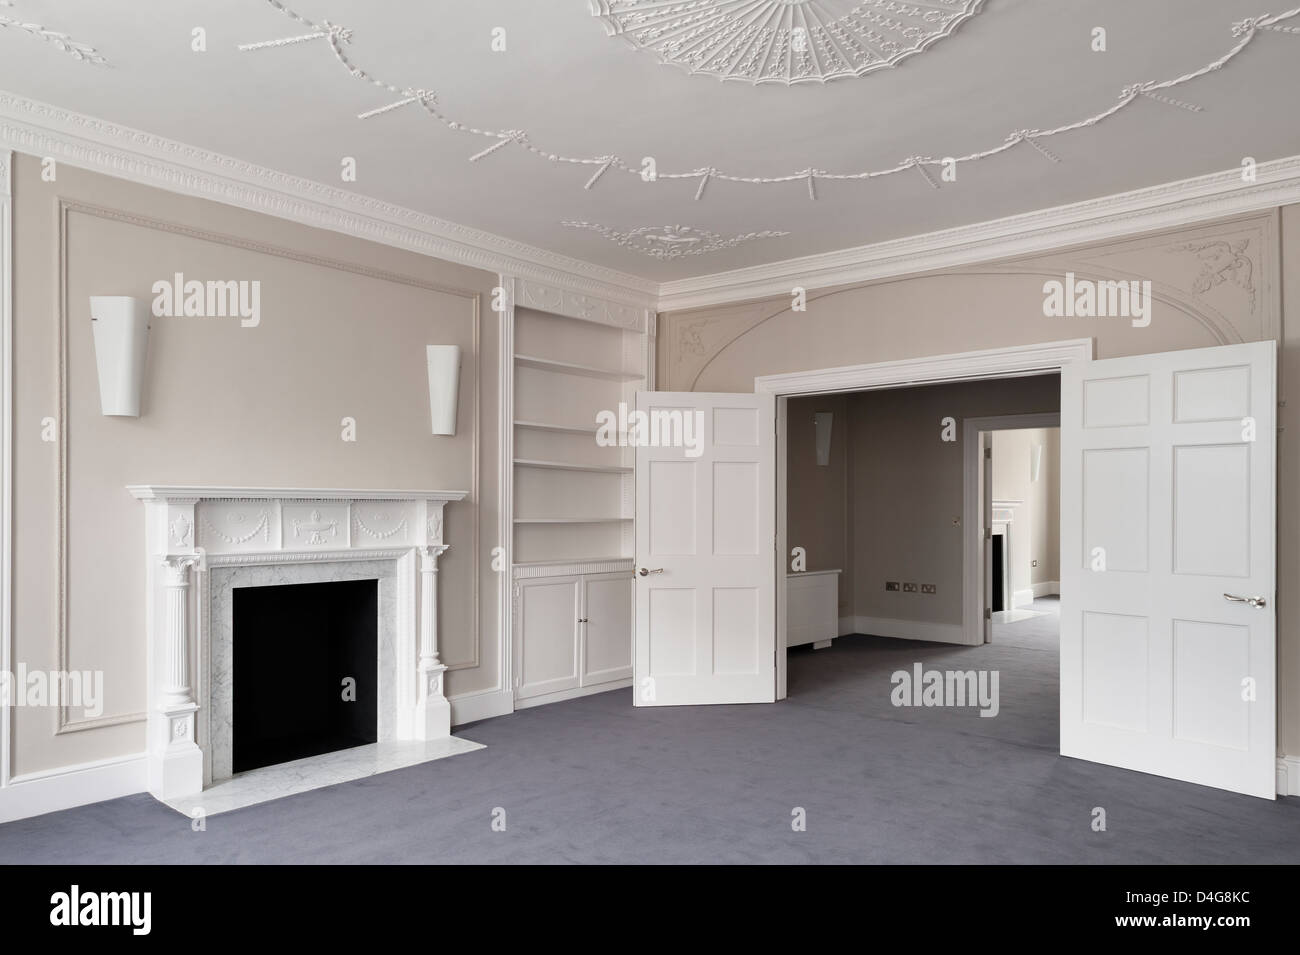 empty communicating rooms with open doors and fireplace - Stock Image